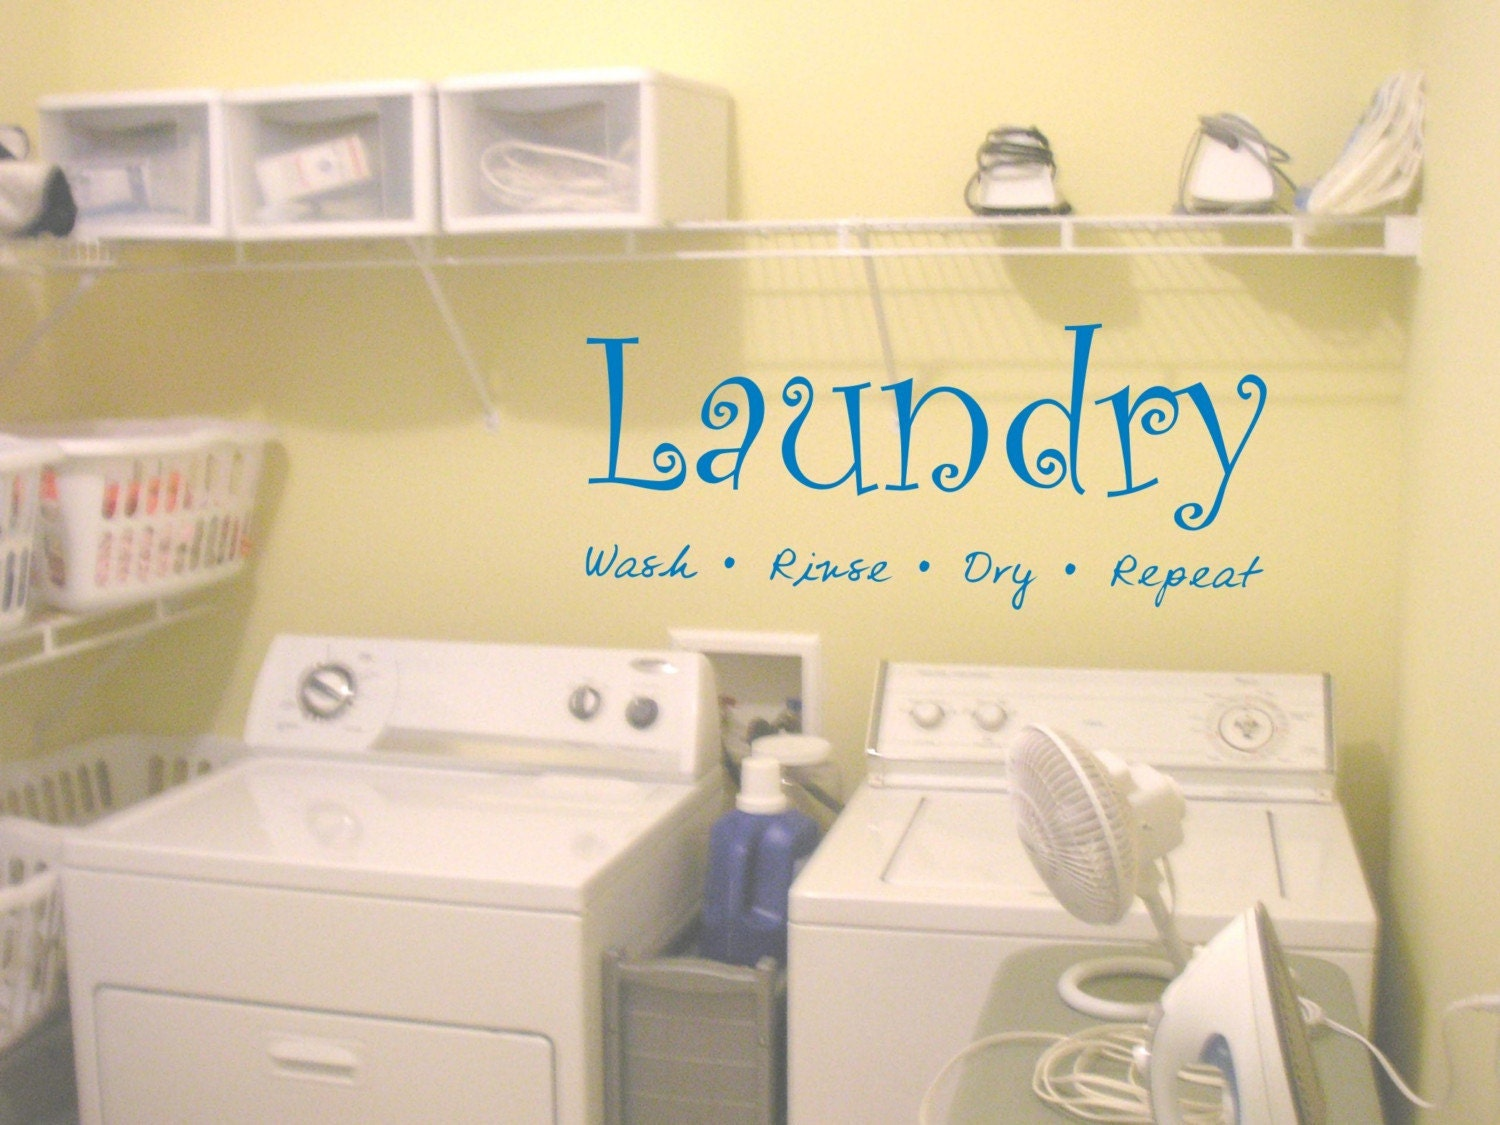 Laundry Room Wall Decor Stickers : Laundry room pictures for walls rumah minimalis